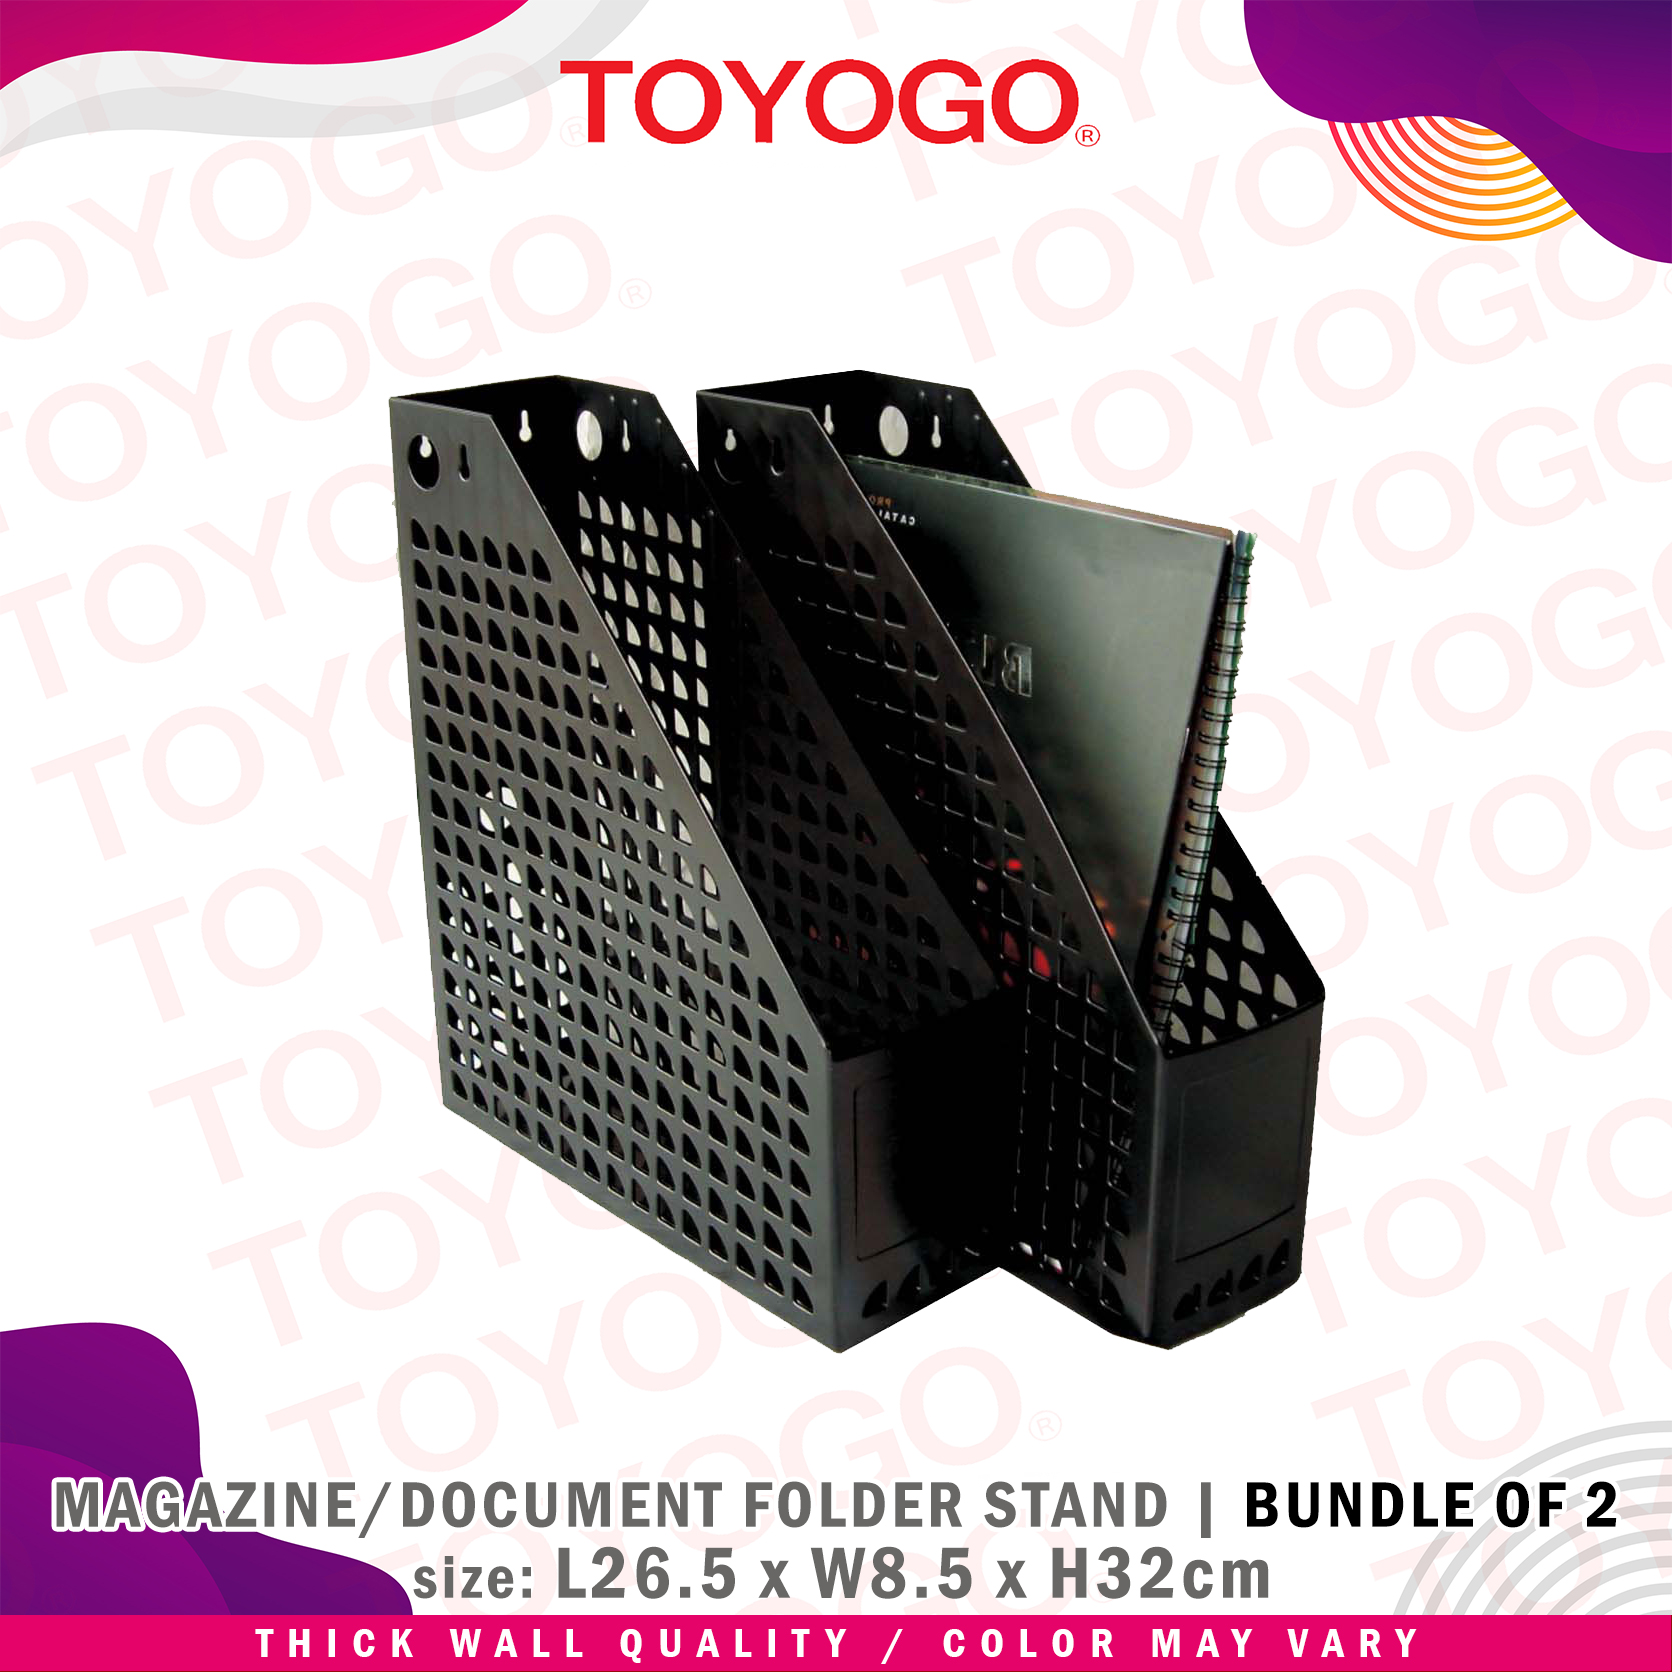 Toyogo 2-In-1 Magazine / Document Folder Stand [3308-2]